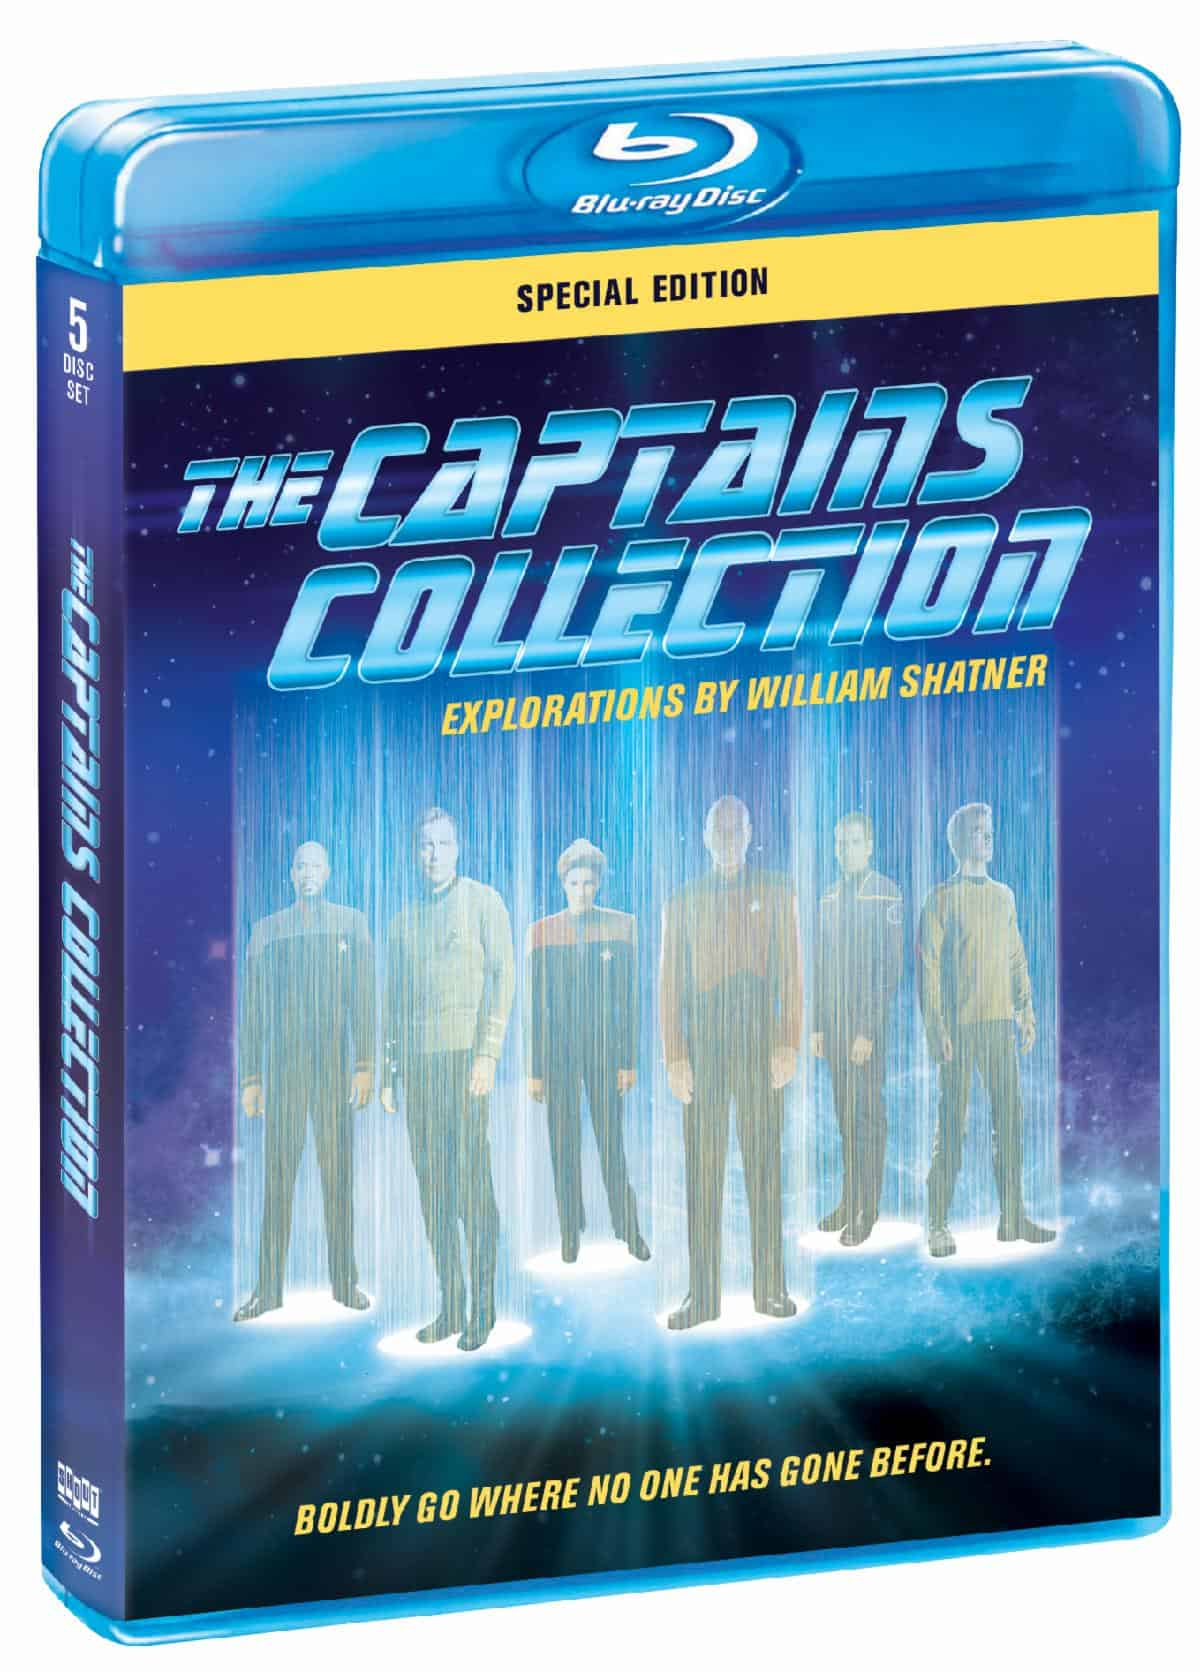 'The Captains Collection' Comes to Blu-ray October 20th from Shout! Factory 2